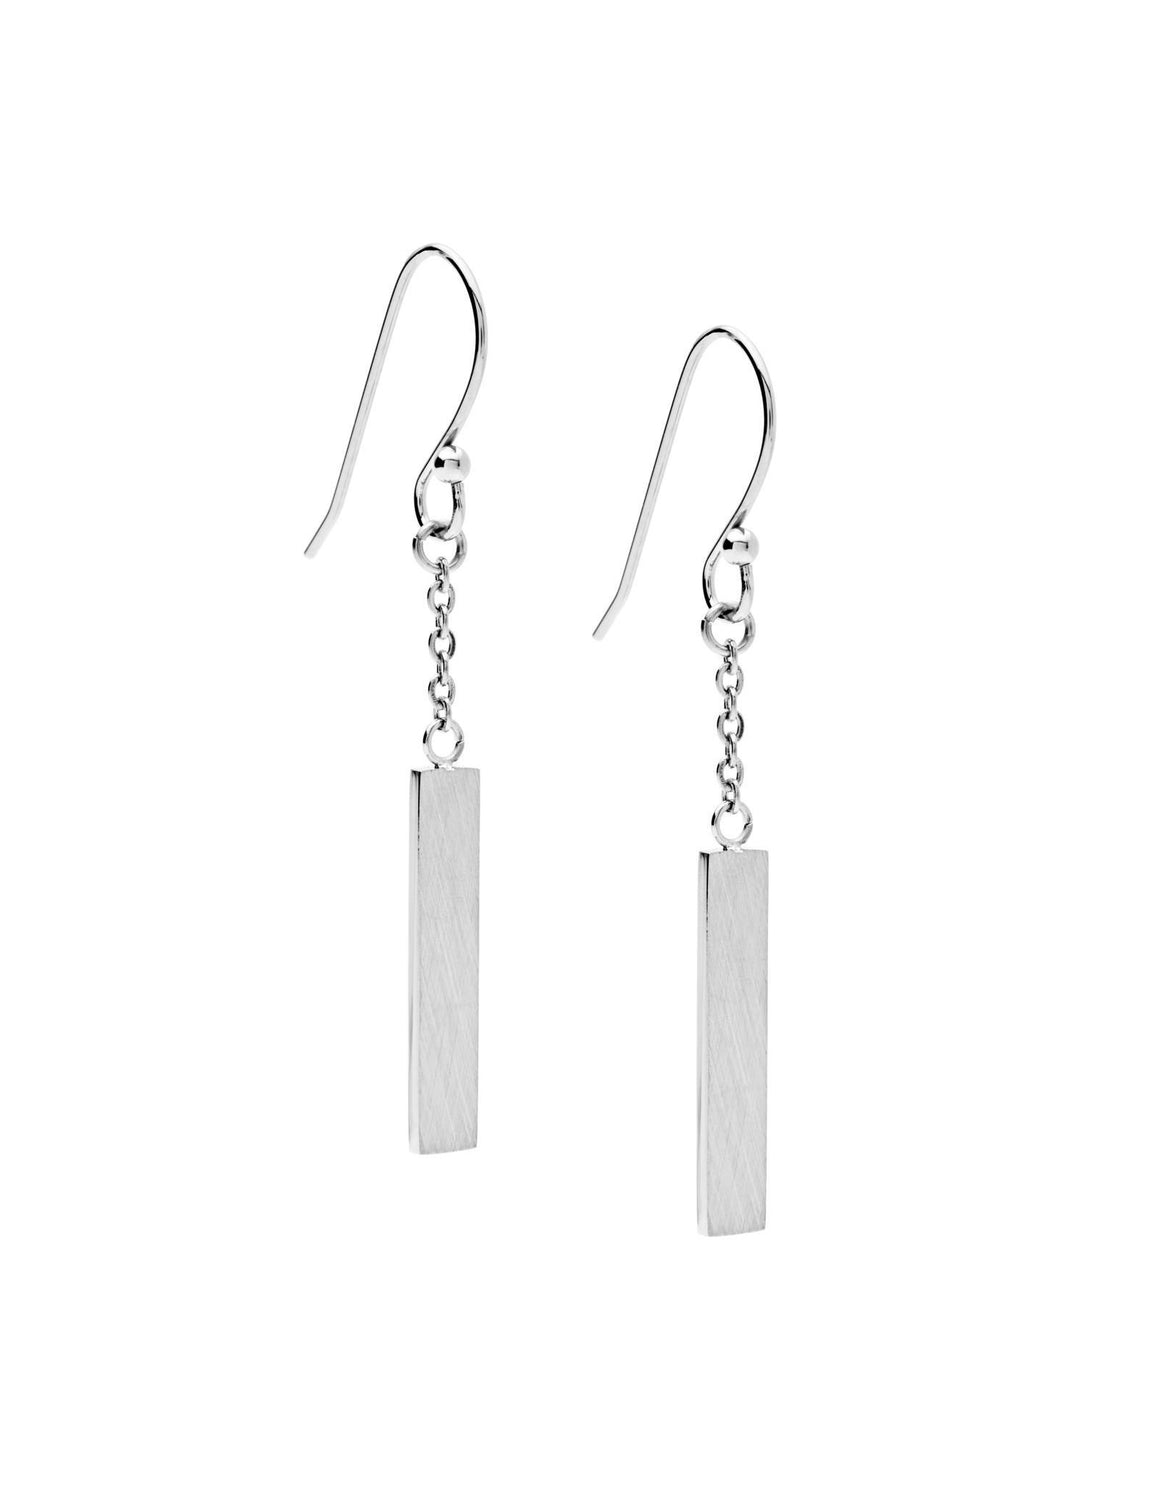 Sandfly Earrings Stainless Steel